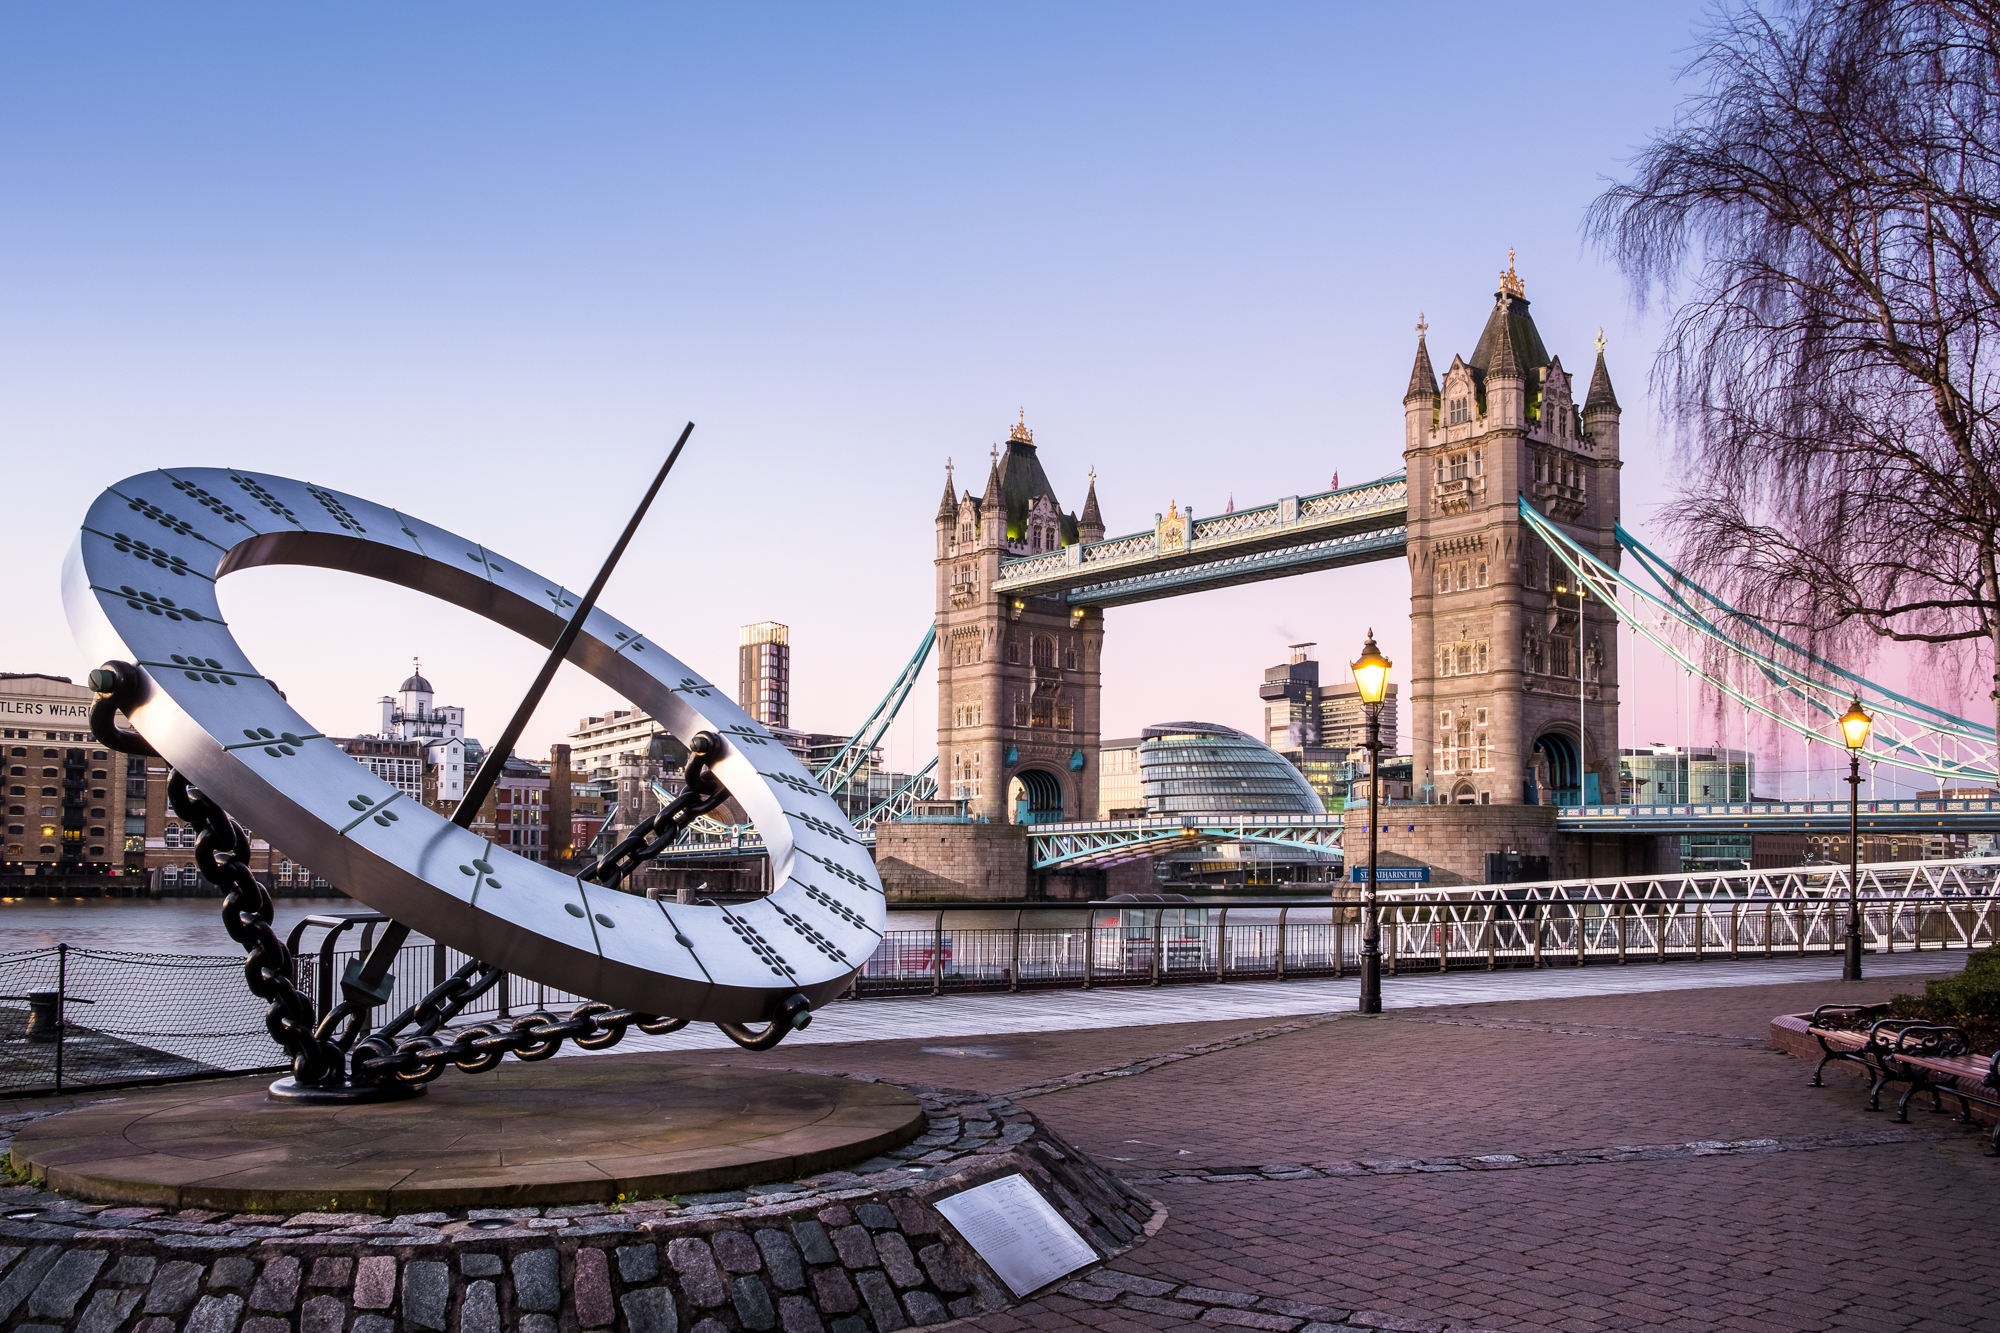 Photo of the sundial at Tower Bridge at sunrise by Trevor Sherwin